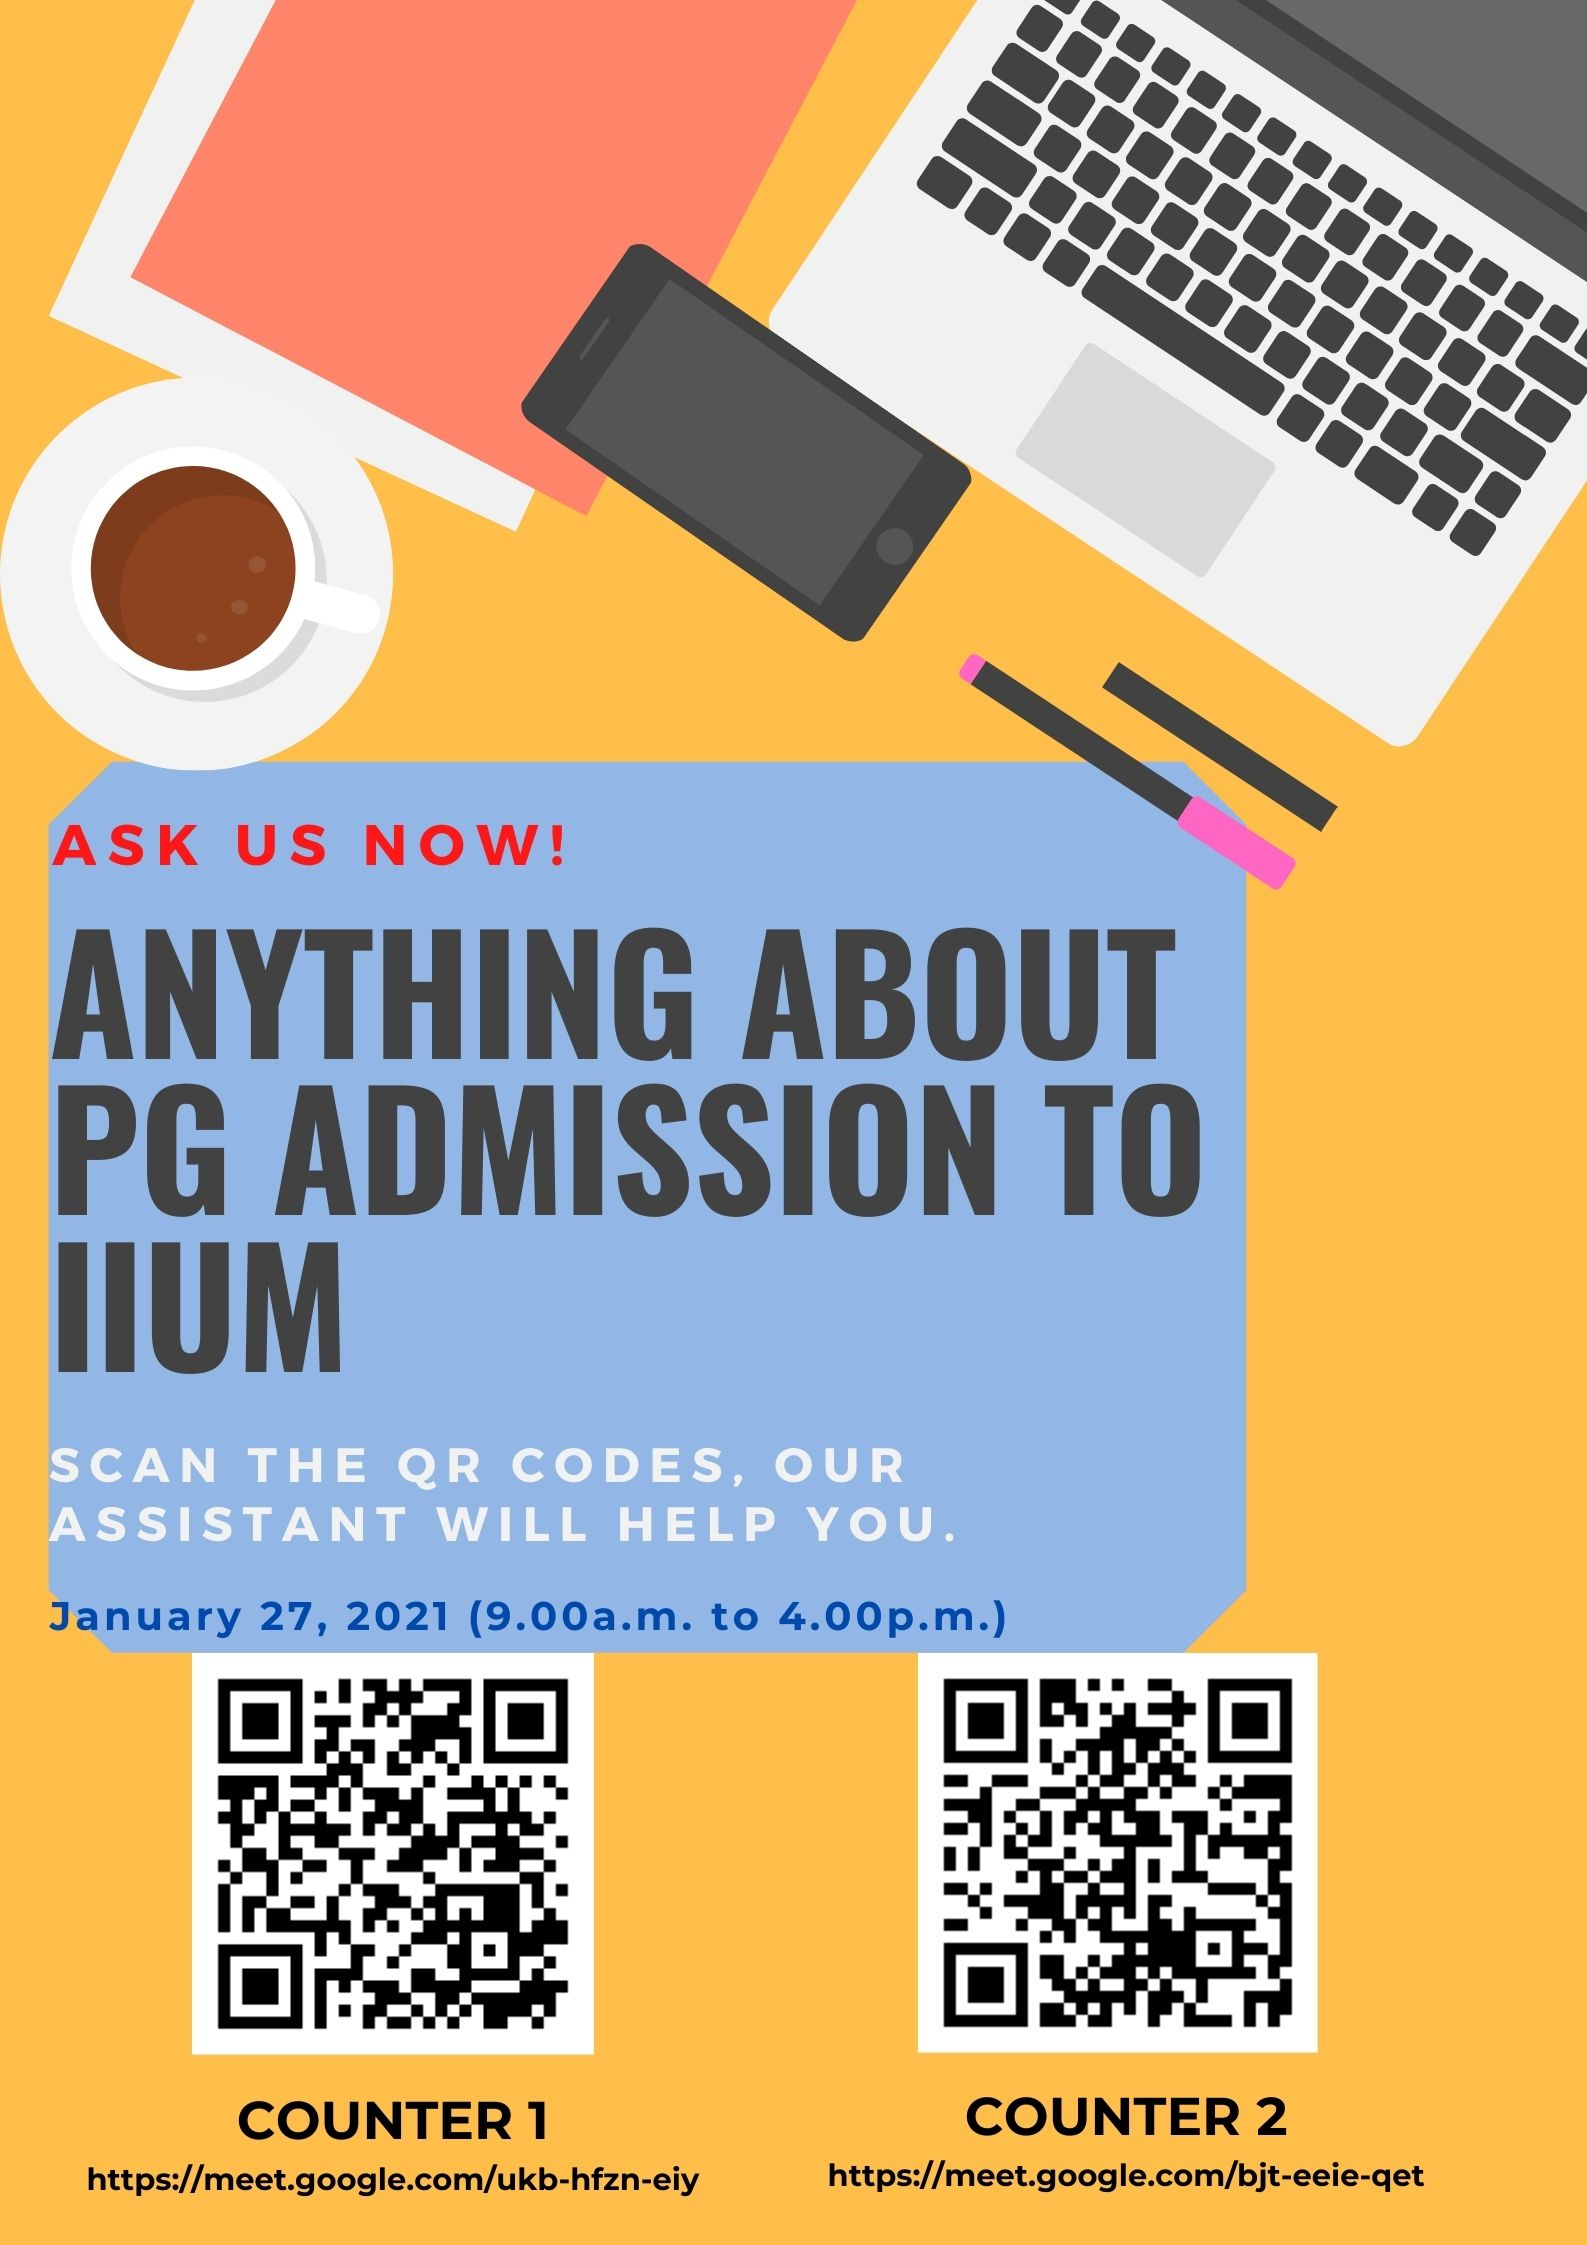 PG Admission Virtual Promotion